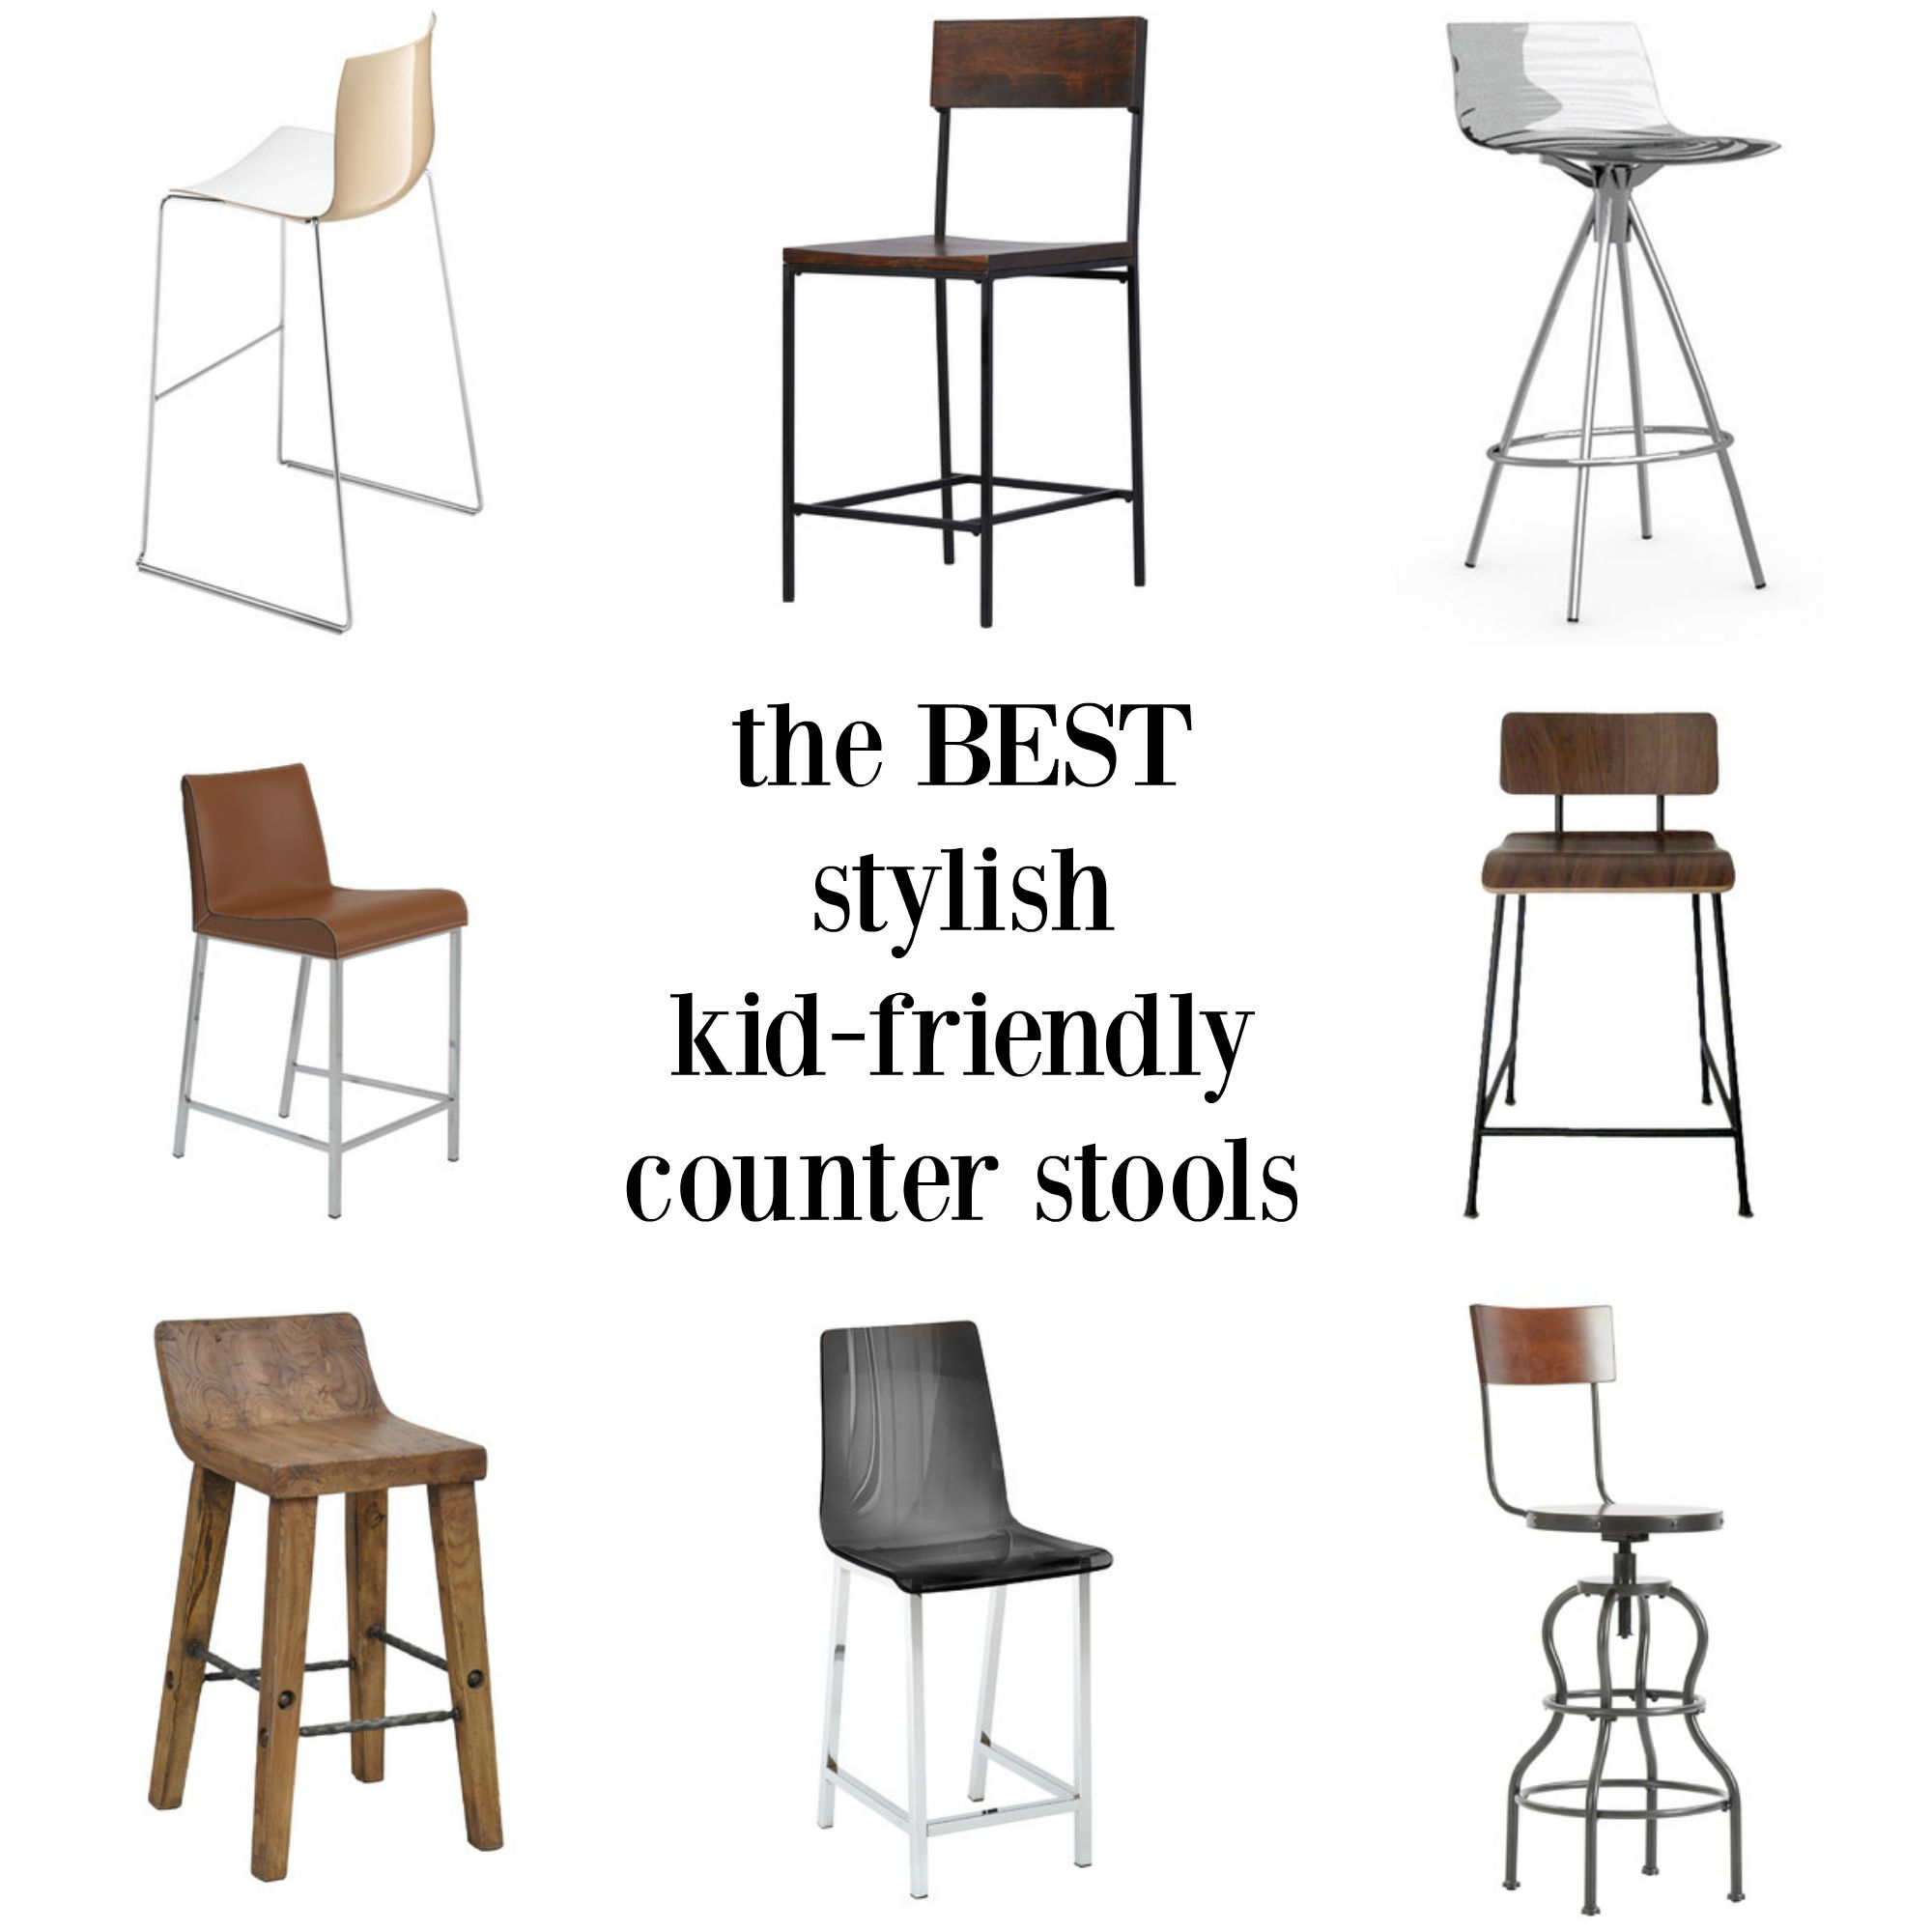 Modern Kitchen Bar Stools Kitchen Islands With Table: The Best Stylish, Kid-Friendly